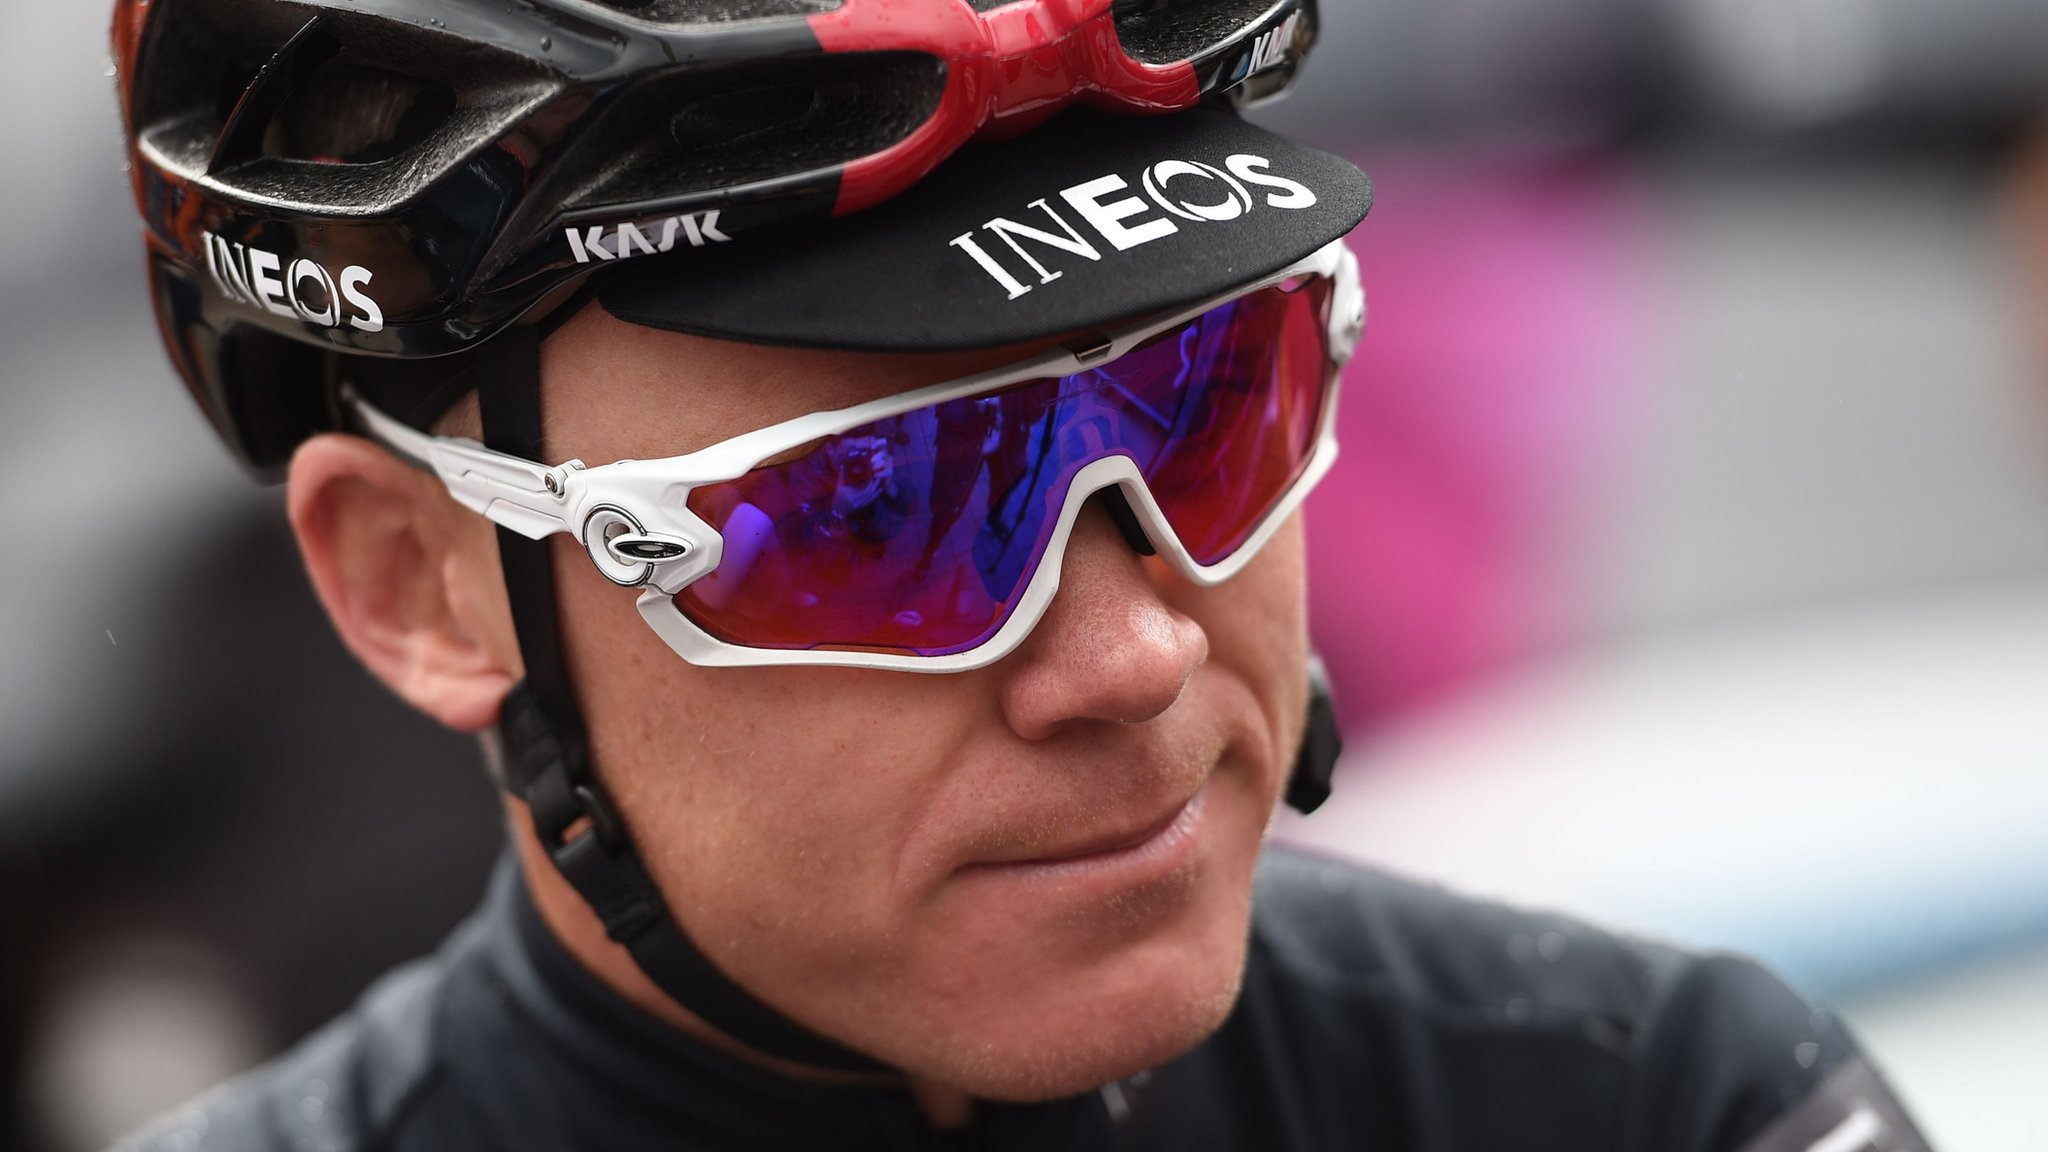 Chris Froome out of Tour de France after fracturing femur, elbow and ribs in high-speed crash